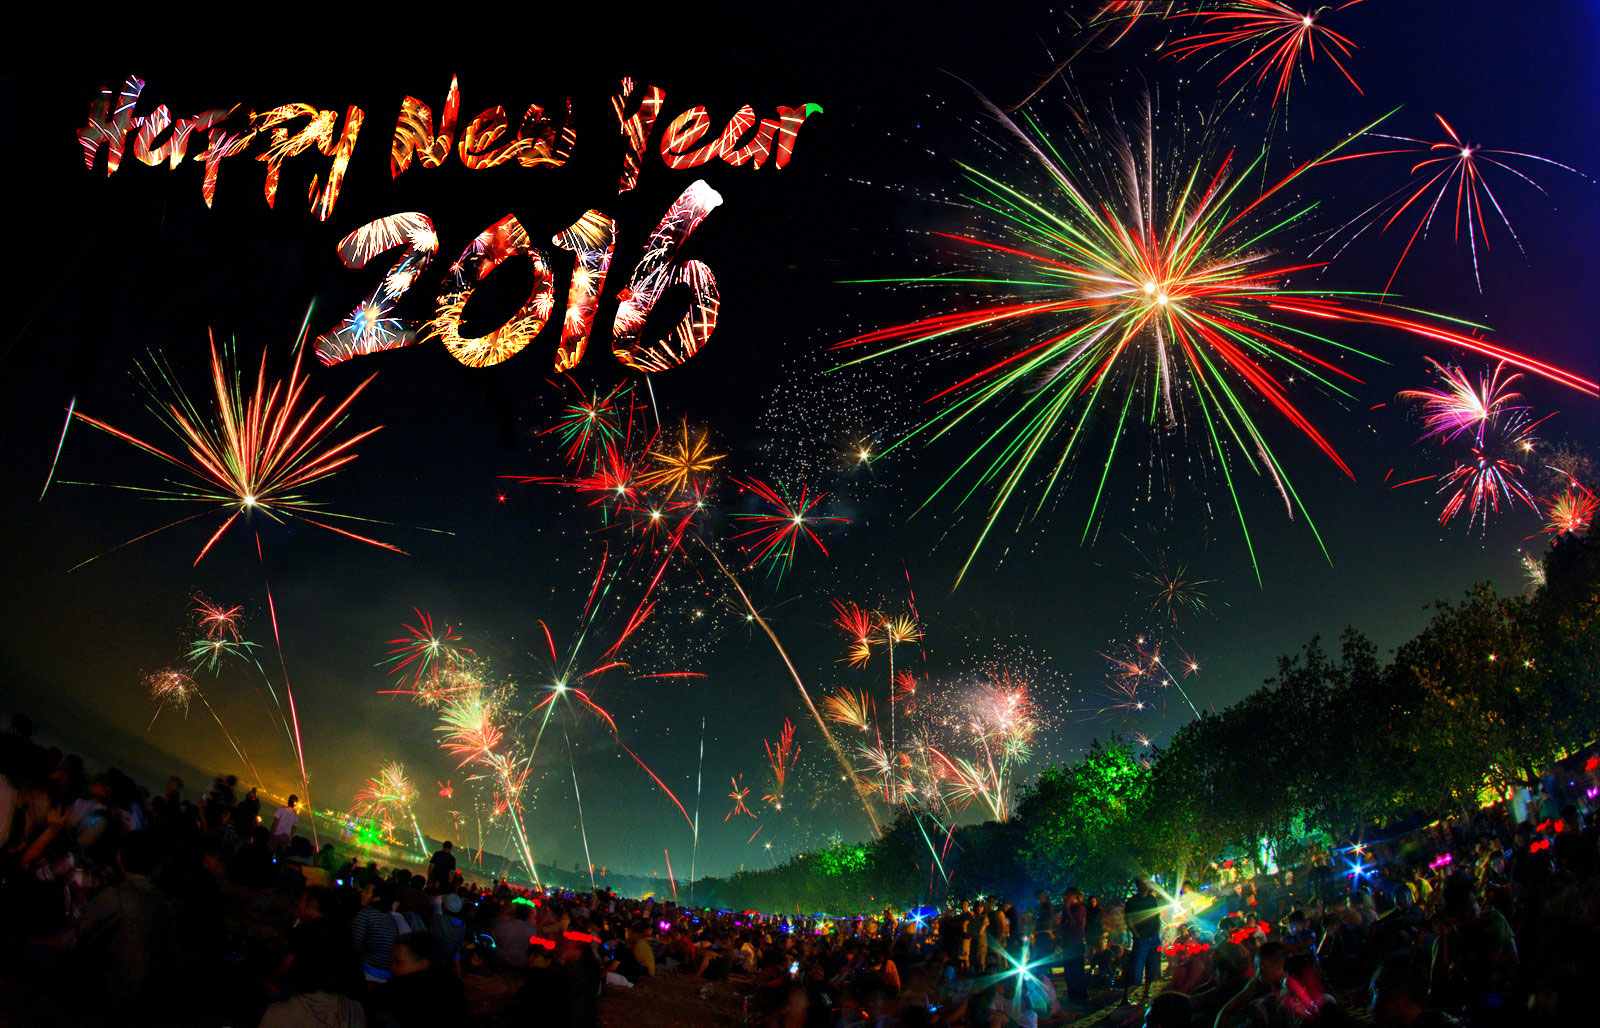 Happy New Year 2016 Wallpapers HD Images Facebook Cover 1600x1028